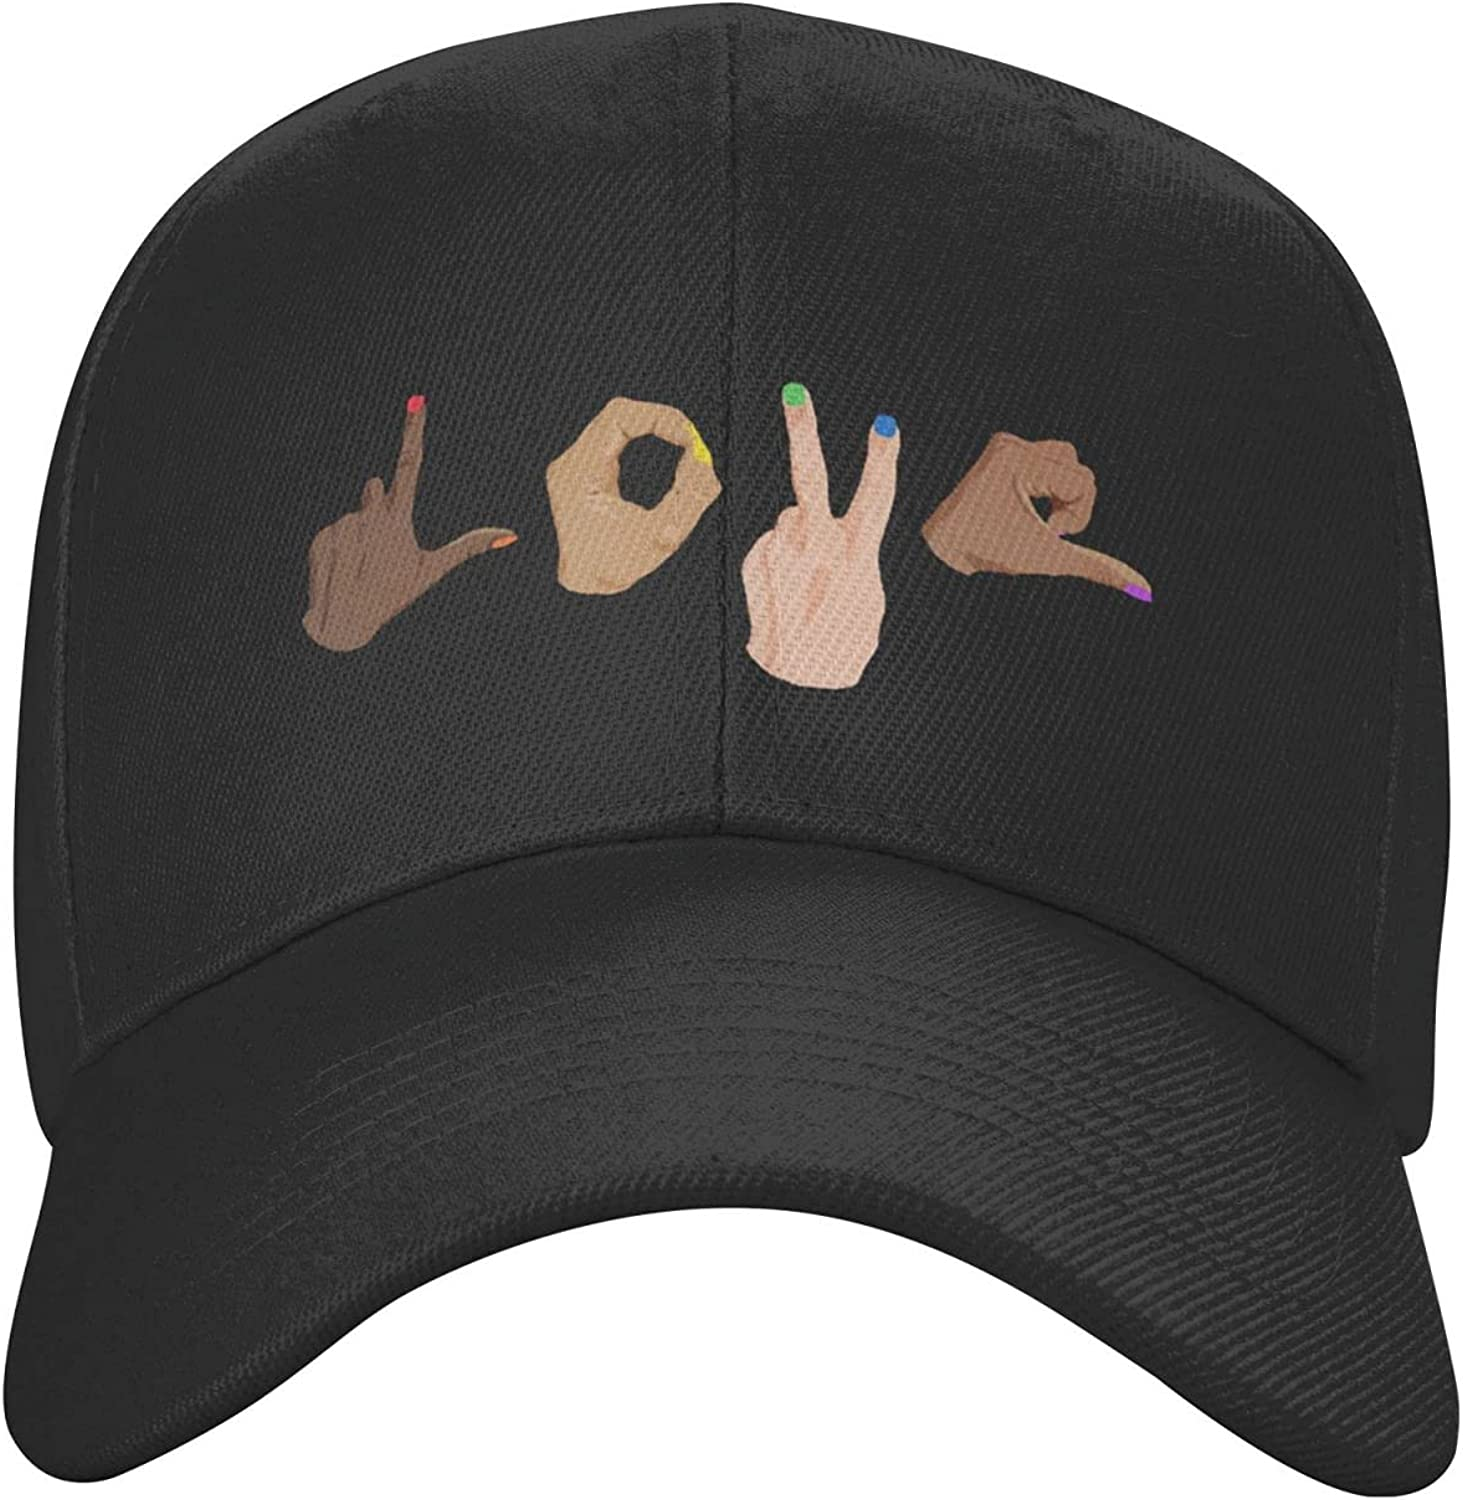 carati Pride Power Hat for Men and Women Adjustable Fashion Cap for Adults Baseball Cap